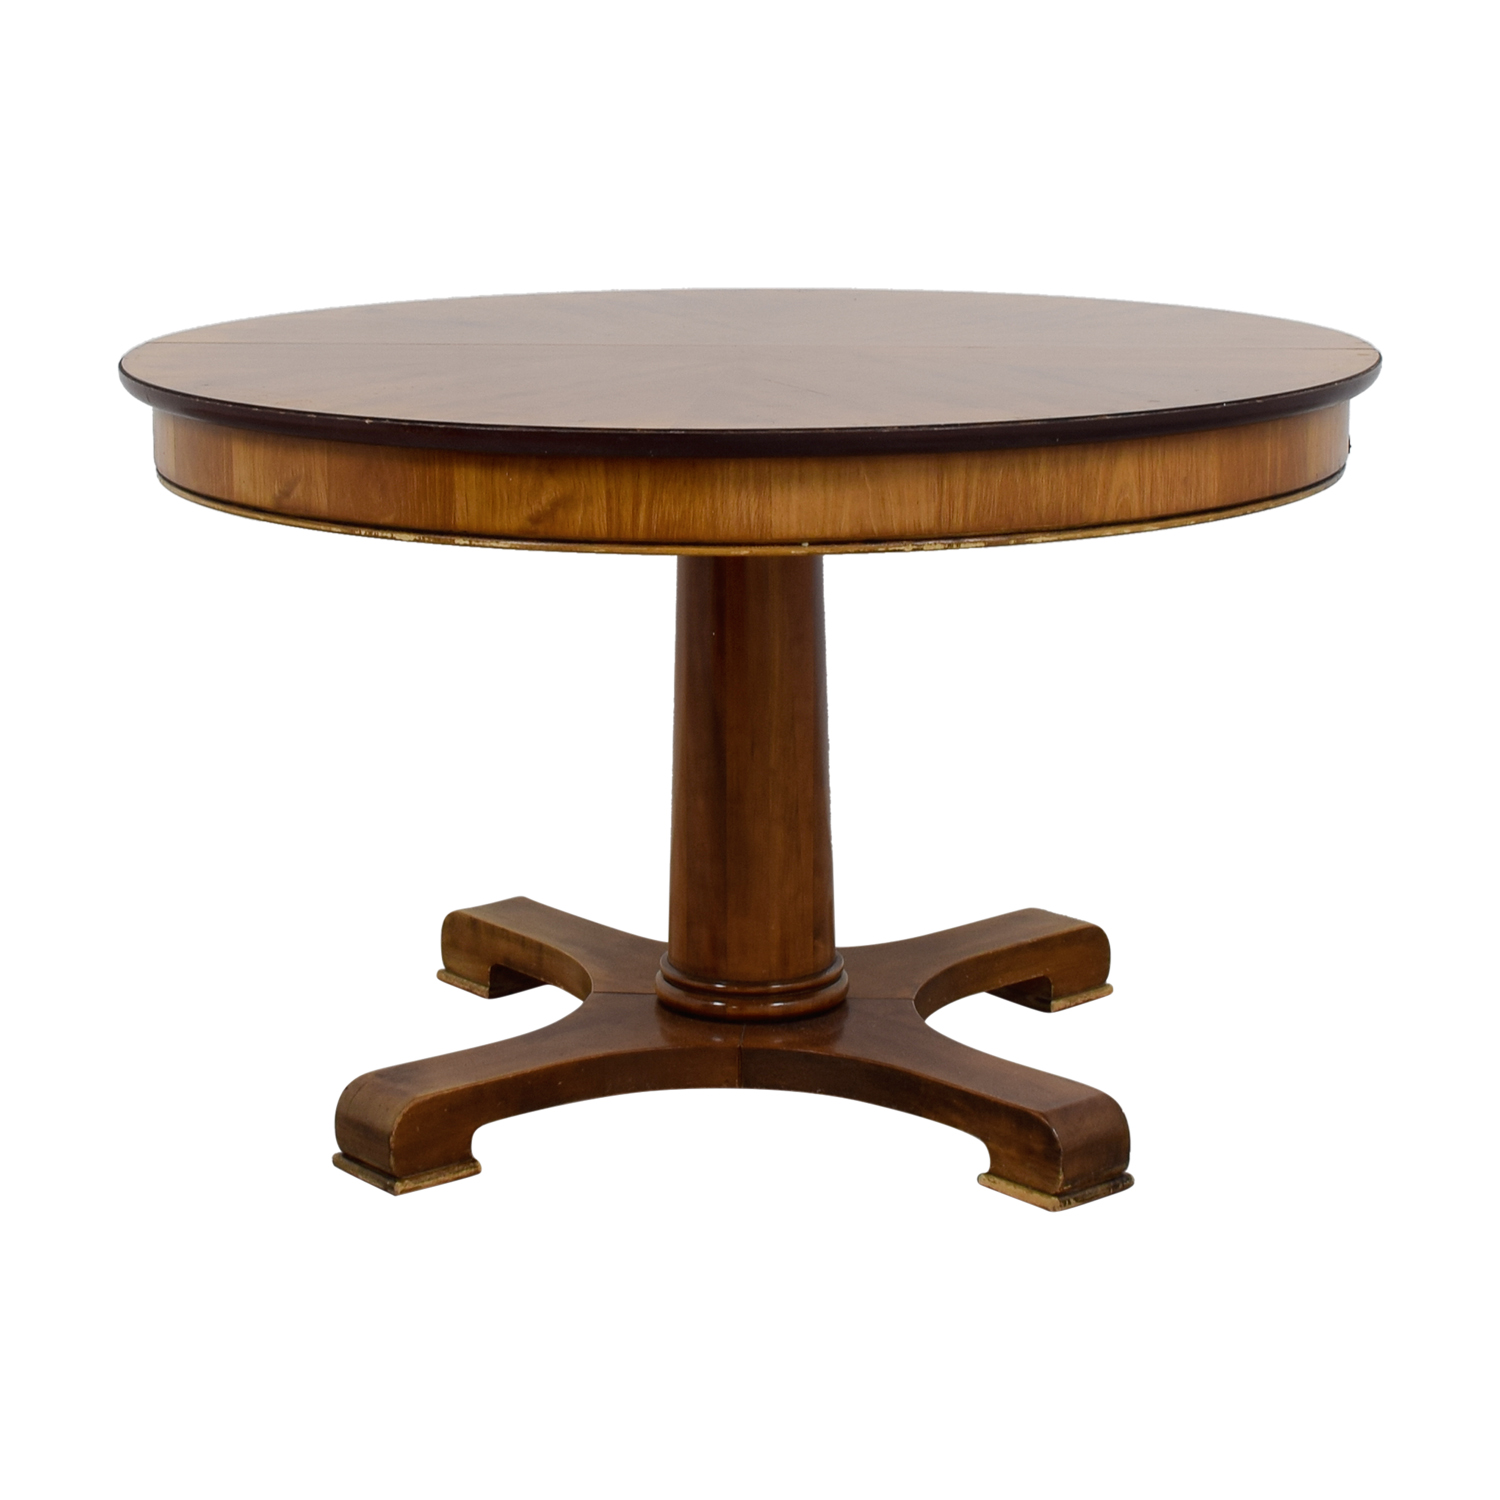 89% OFF   Grange Grange Expandable Wood Dining Table With Protective Cover  / Tables